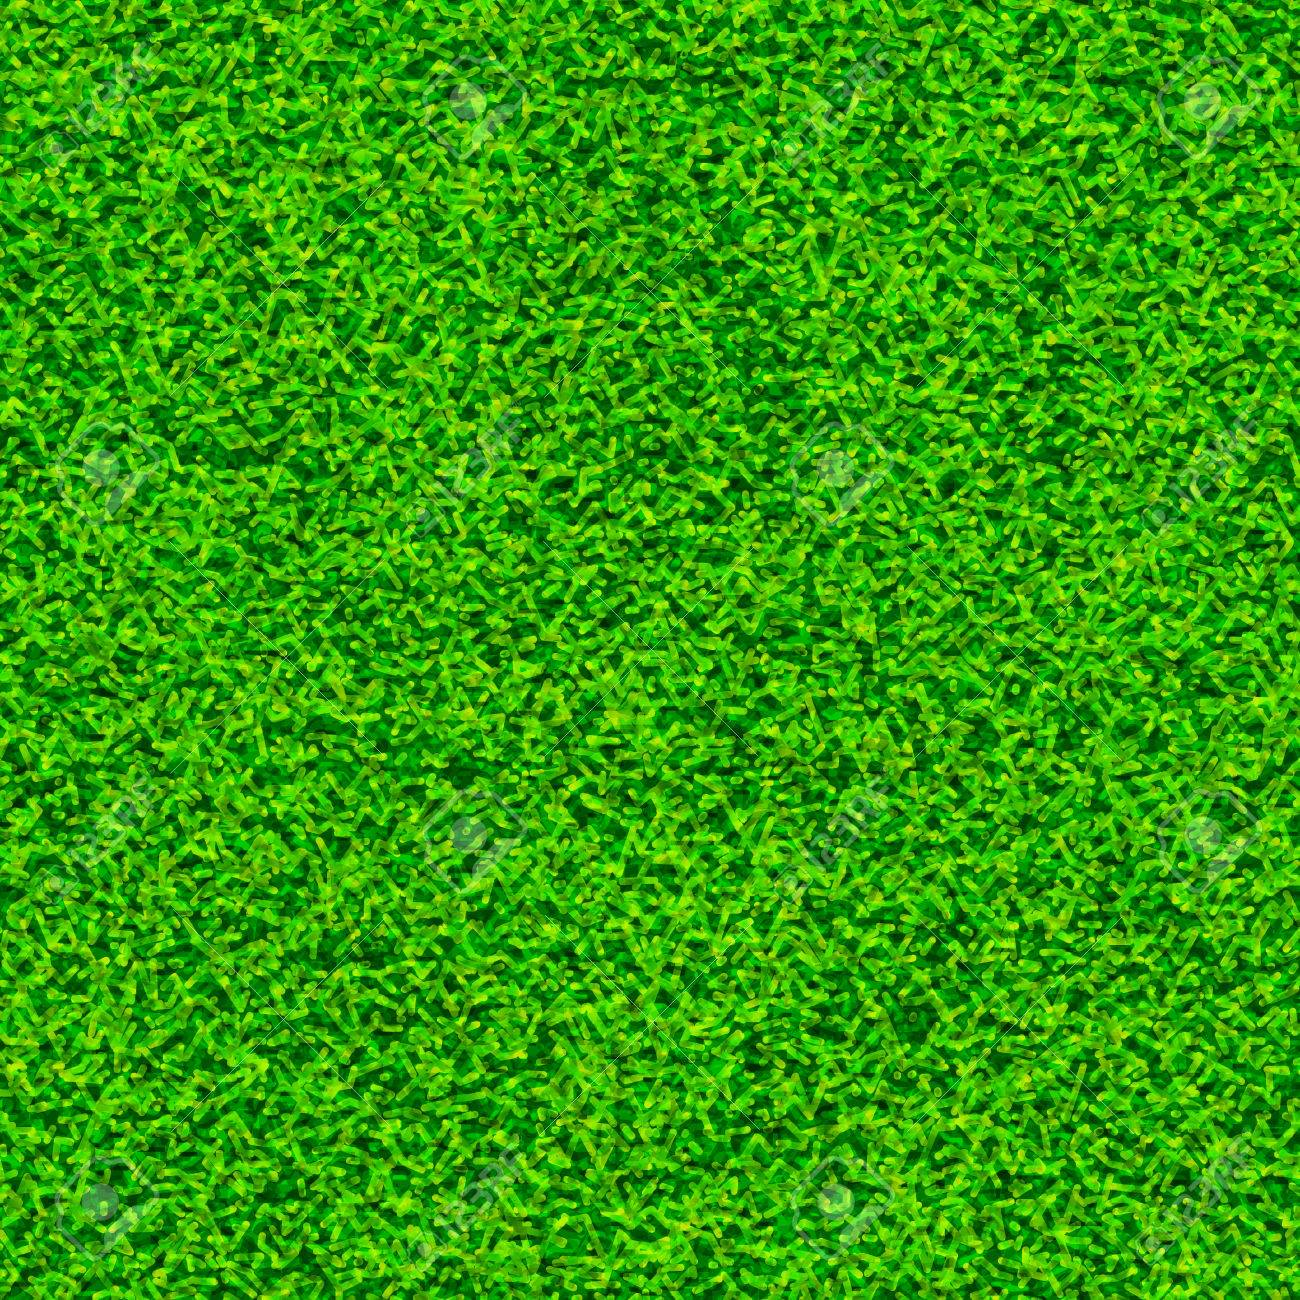 green grass texture vector background royalty free cliparts vectors and stock illustration image 55147678 green grass texture vector background